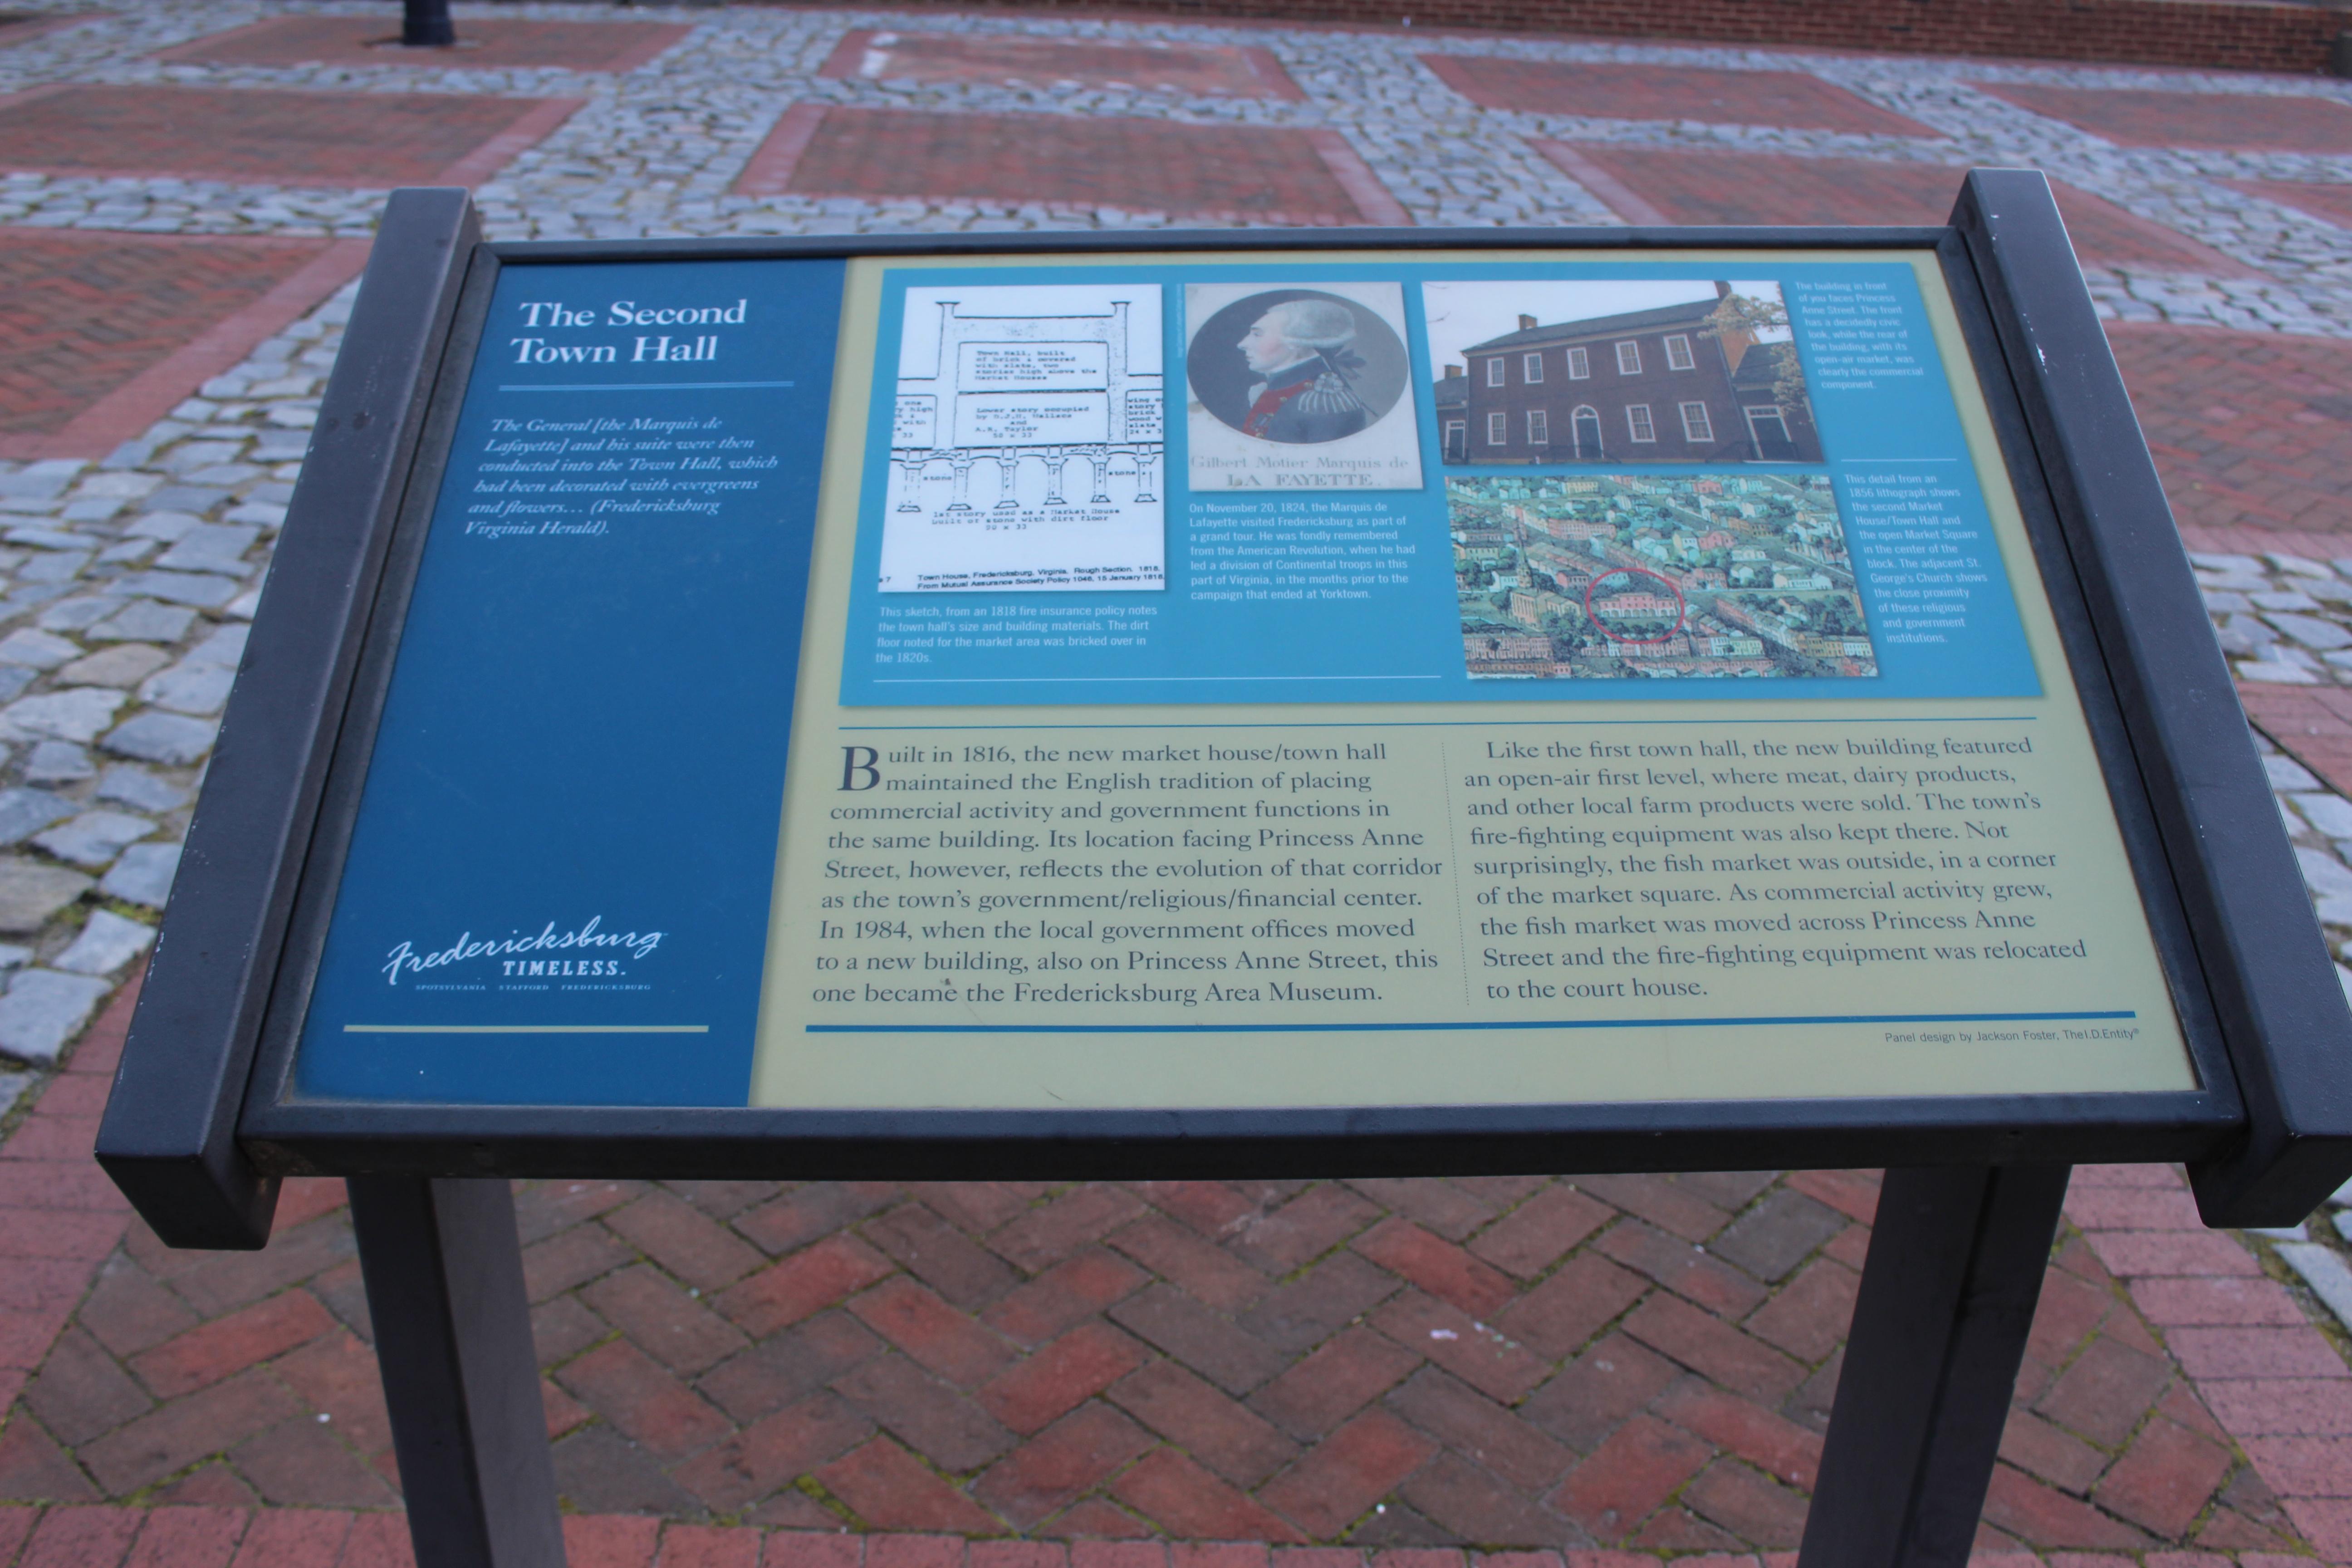 Pictured here is the Second Town Hall state marker